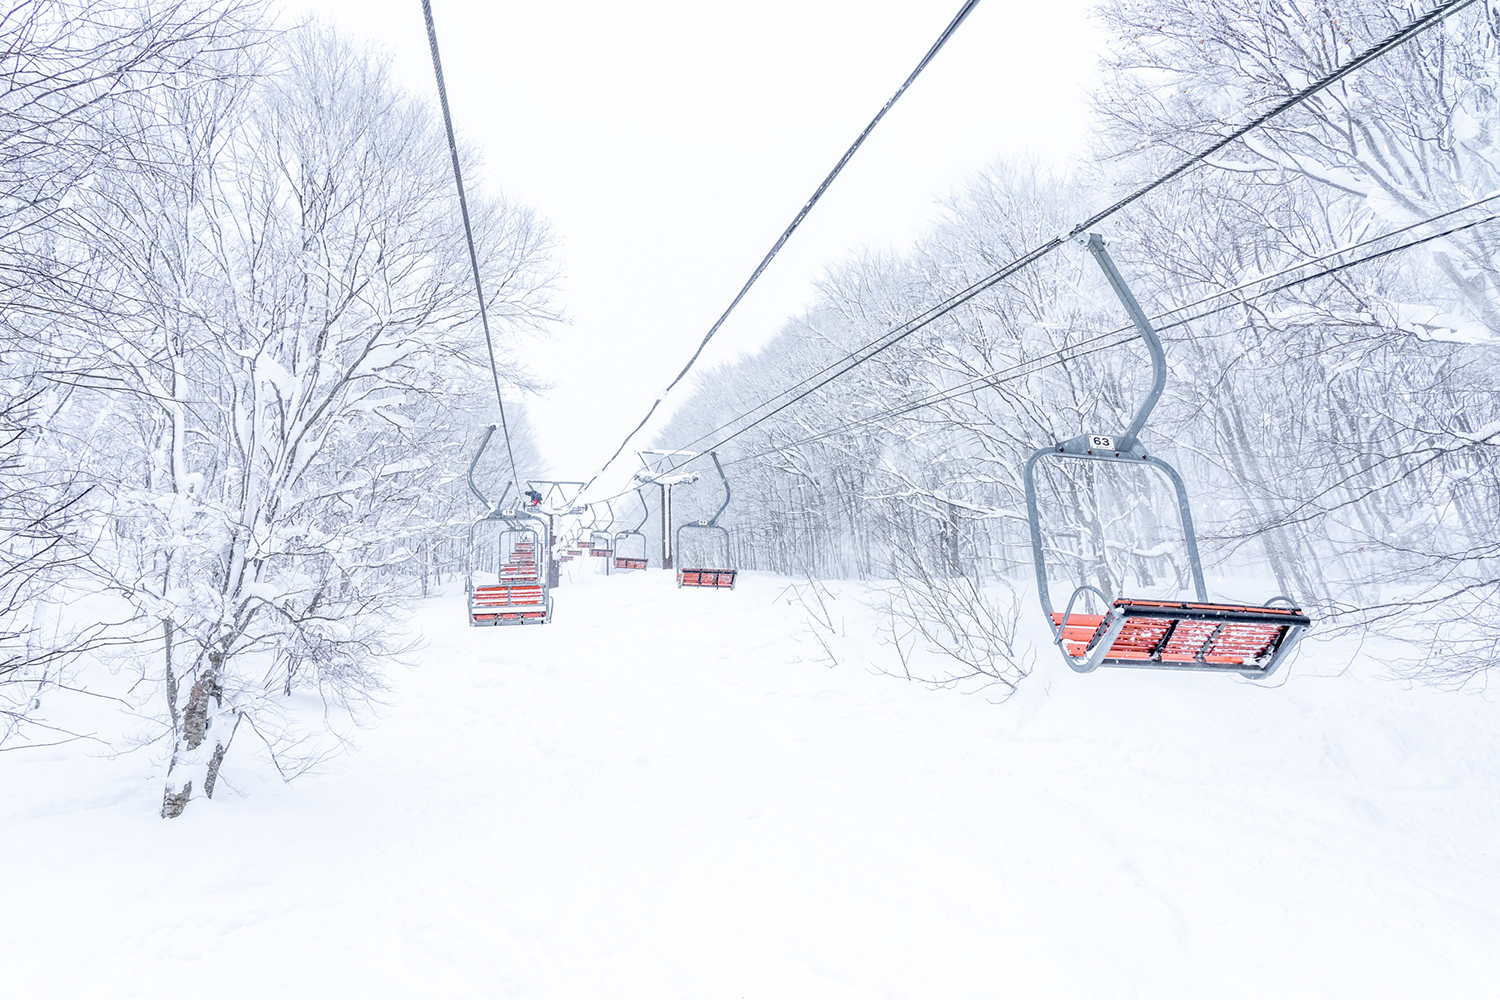 Inexpensive Lift Tickets